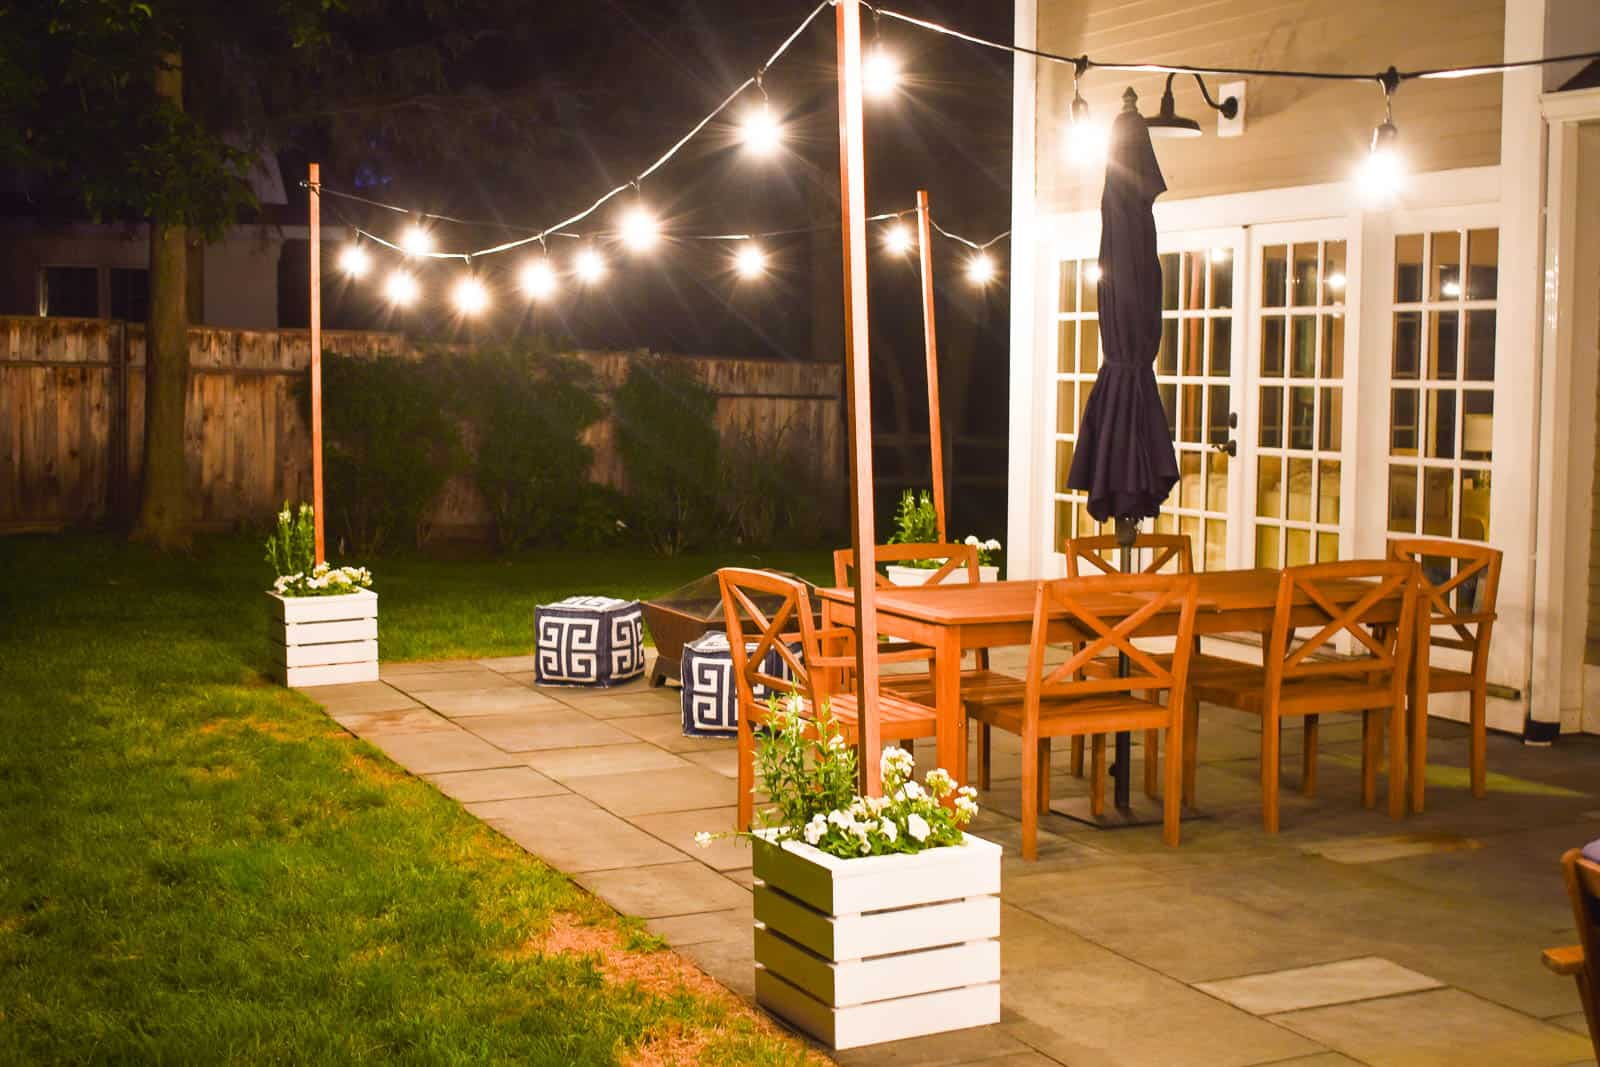 DIY Planter with Pole for String Lights - At Charlotte's House on Backyard String Lights Diy  id=20642